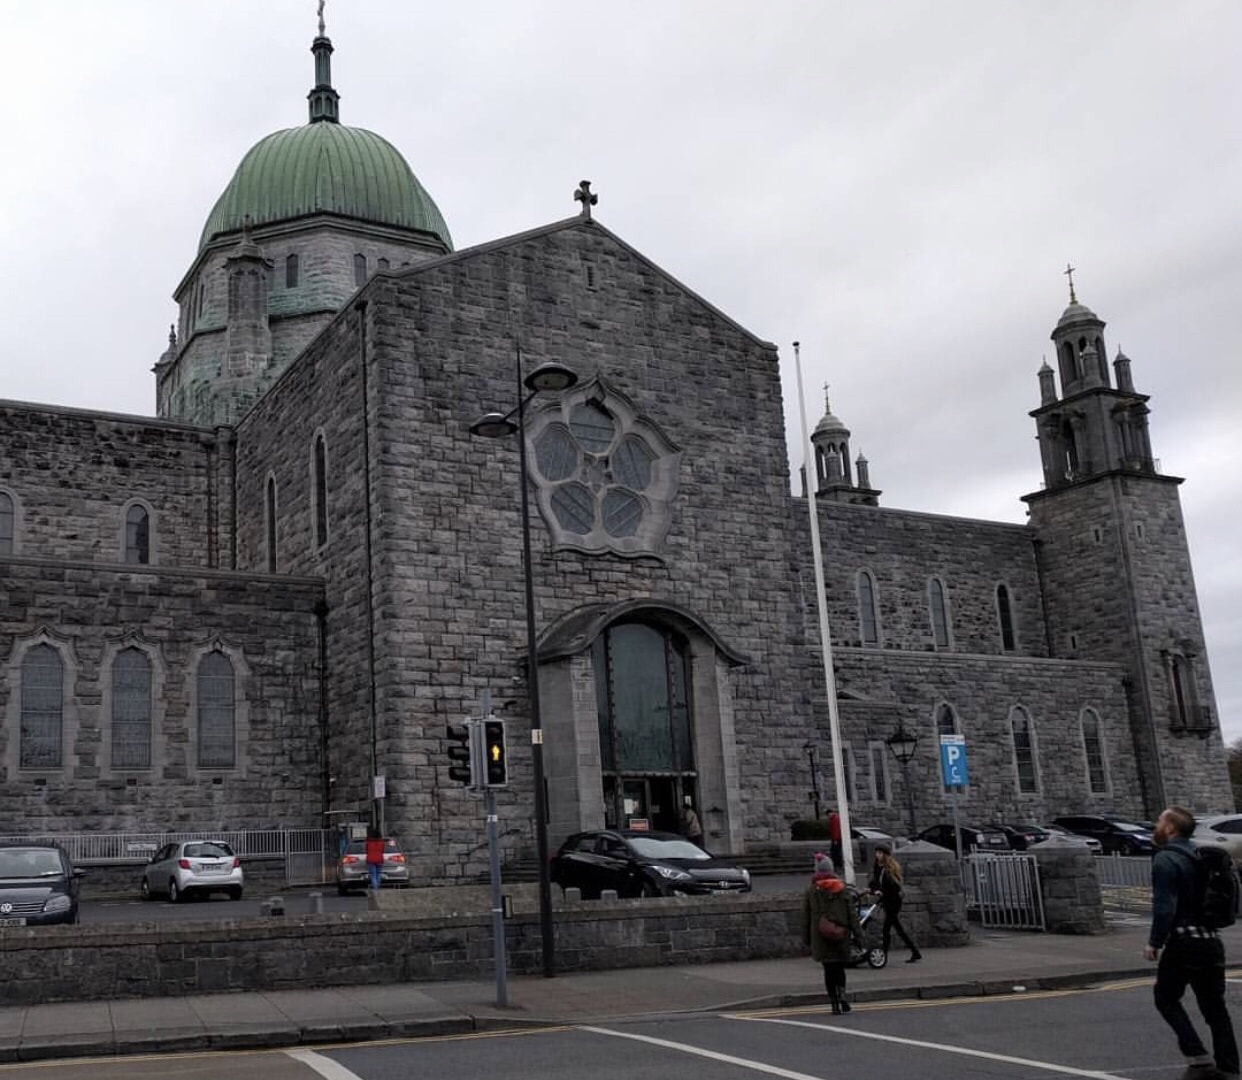 Cathedral of Our Lady Assumed into Heaven, Galway